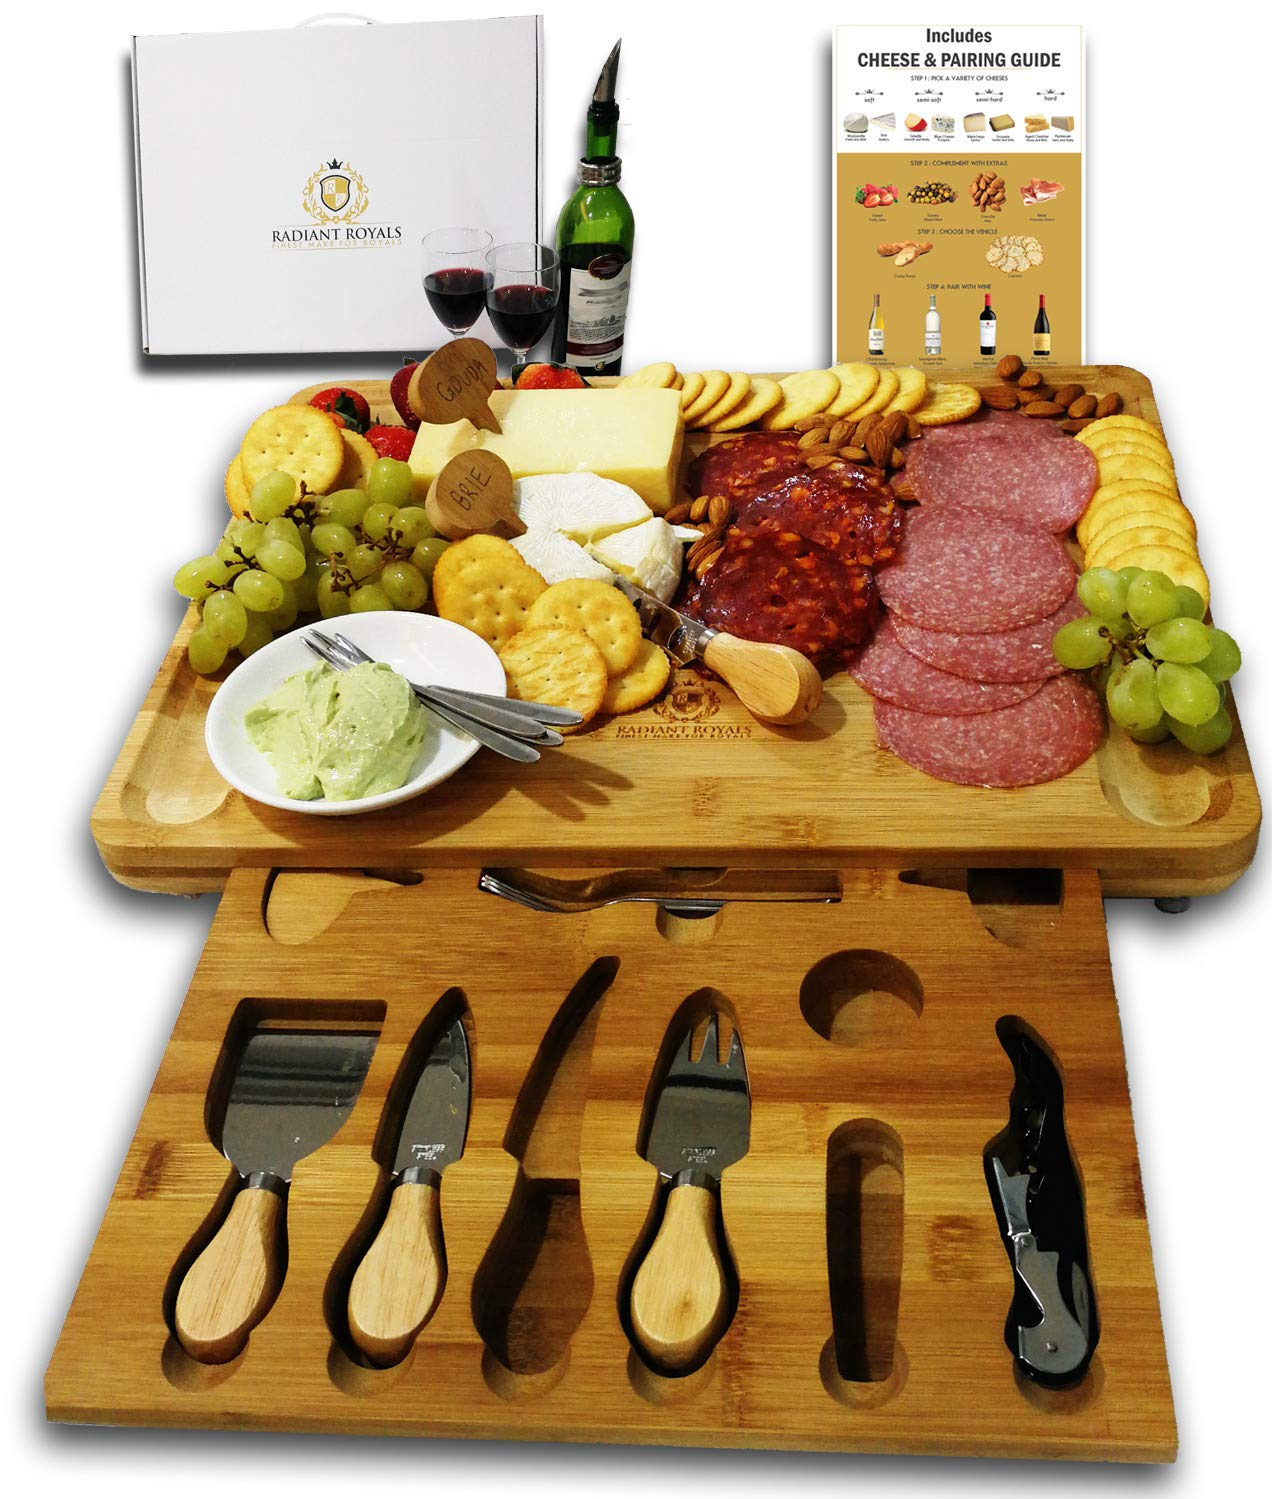 Unique Housewarming Gifts, Men, Women Birthday, Thanksgiving Gift | Extra Large Cheese Plate Board with Hidden Magnetic Drawer holding Cheese Knives, Serving Forks, Markers and Wine Accessories by Radiant Royals